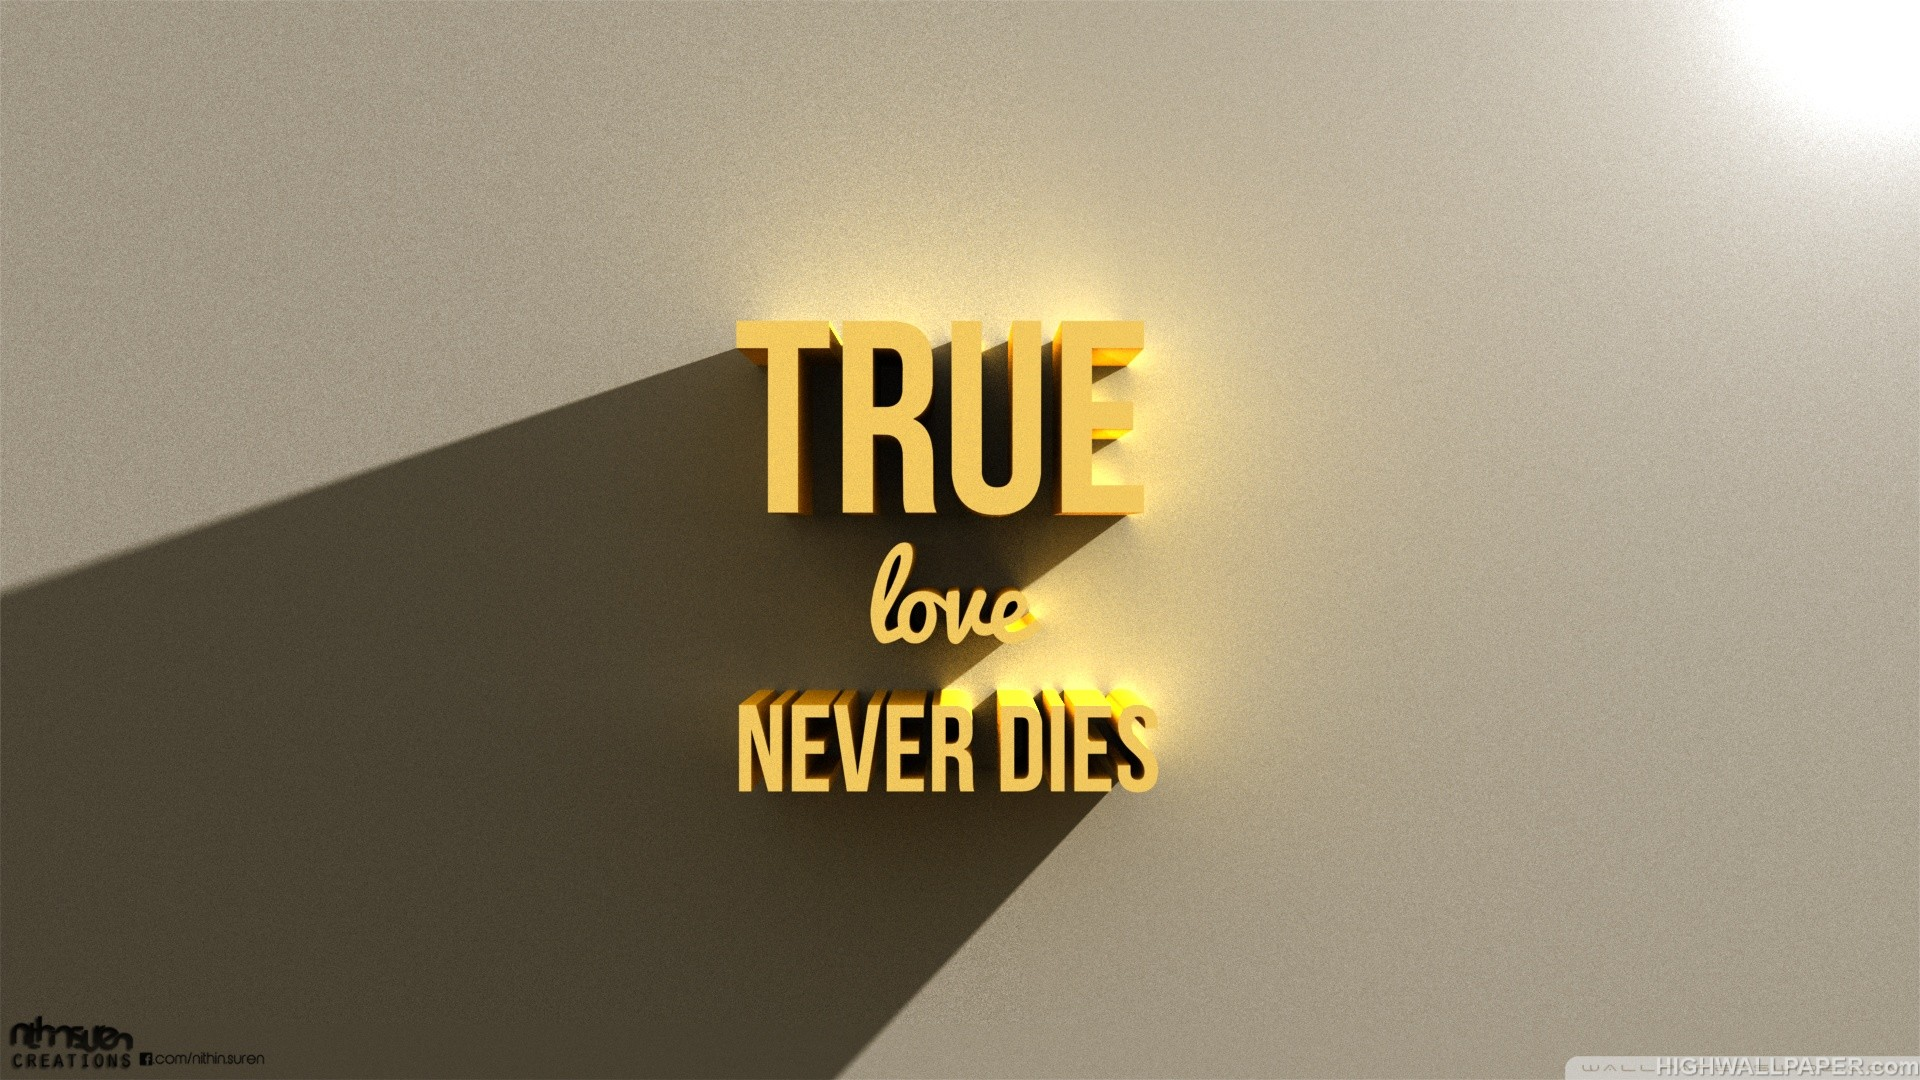 True Love Wallpaper Full Hd : True Love Never Dies HD Wallpaper